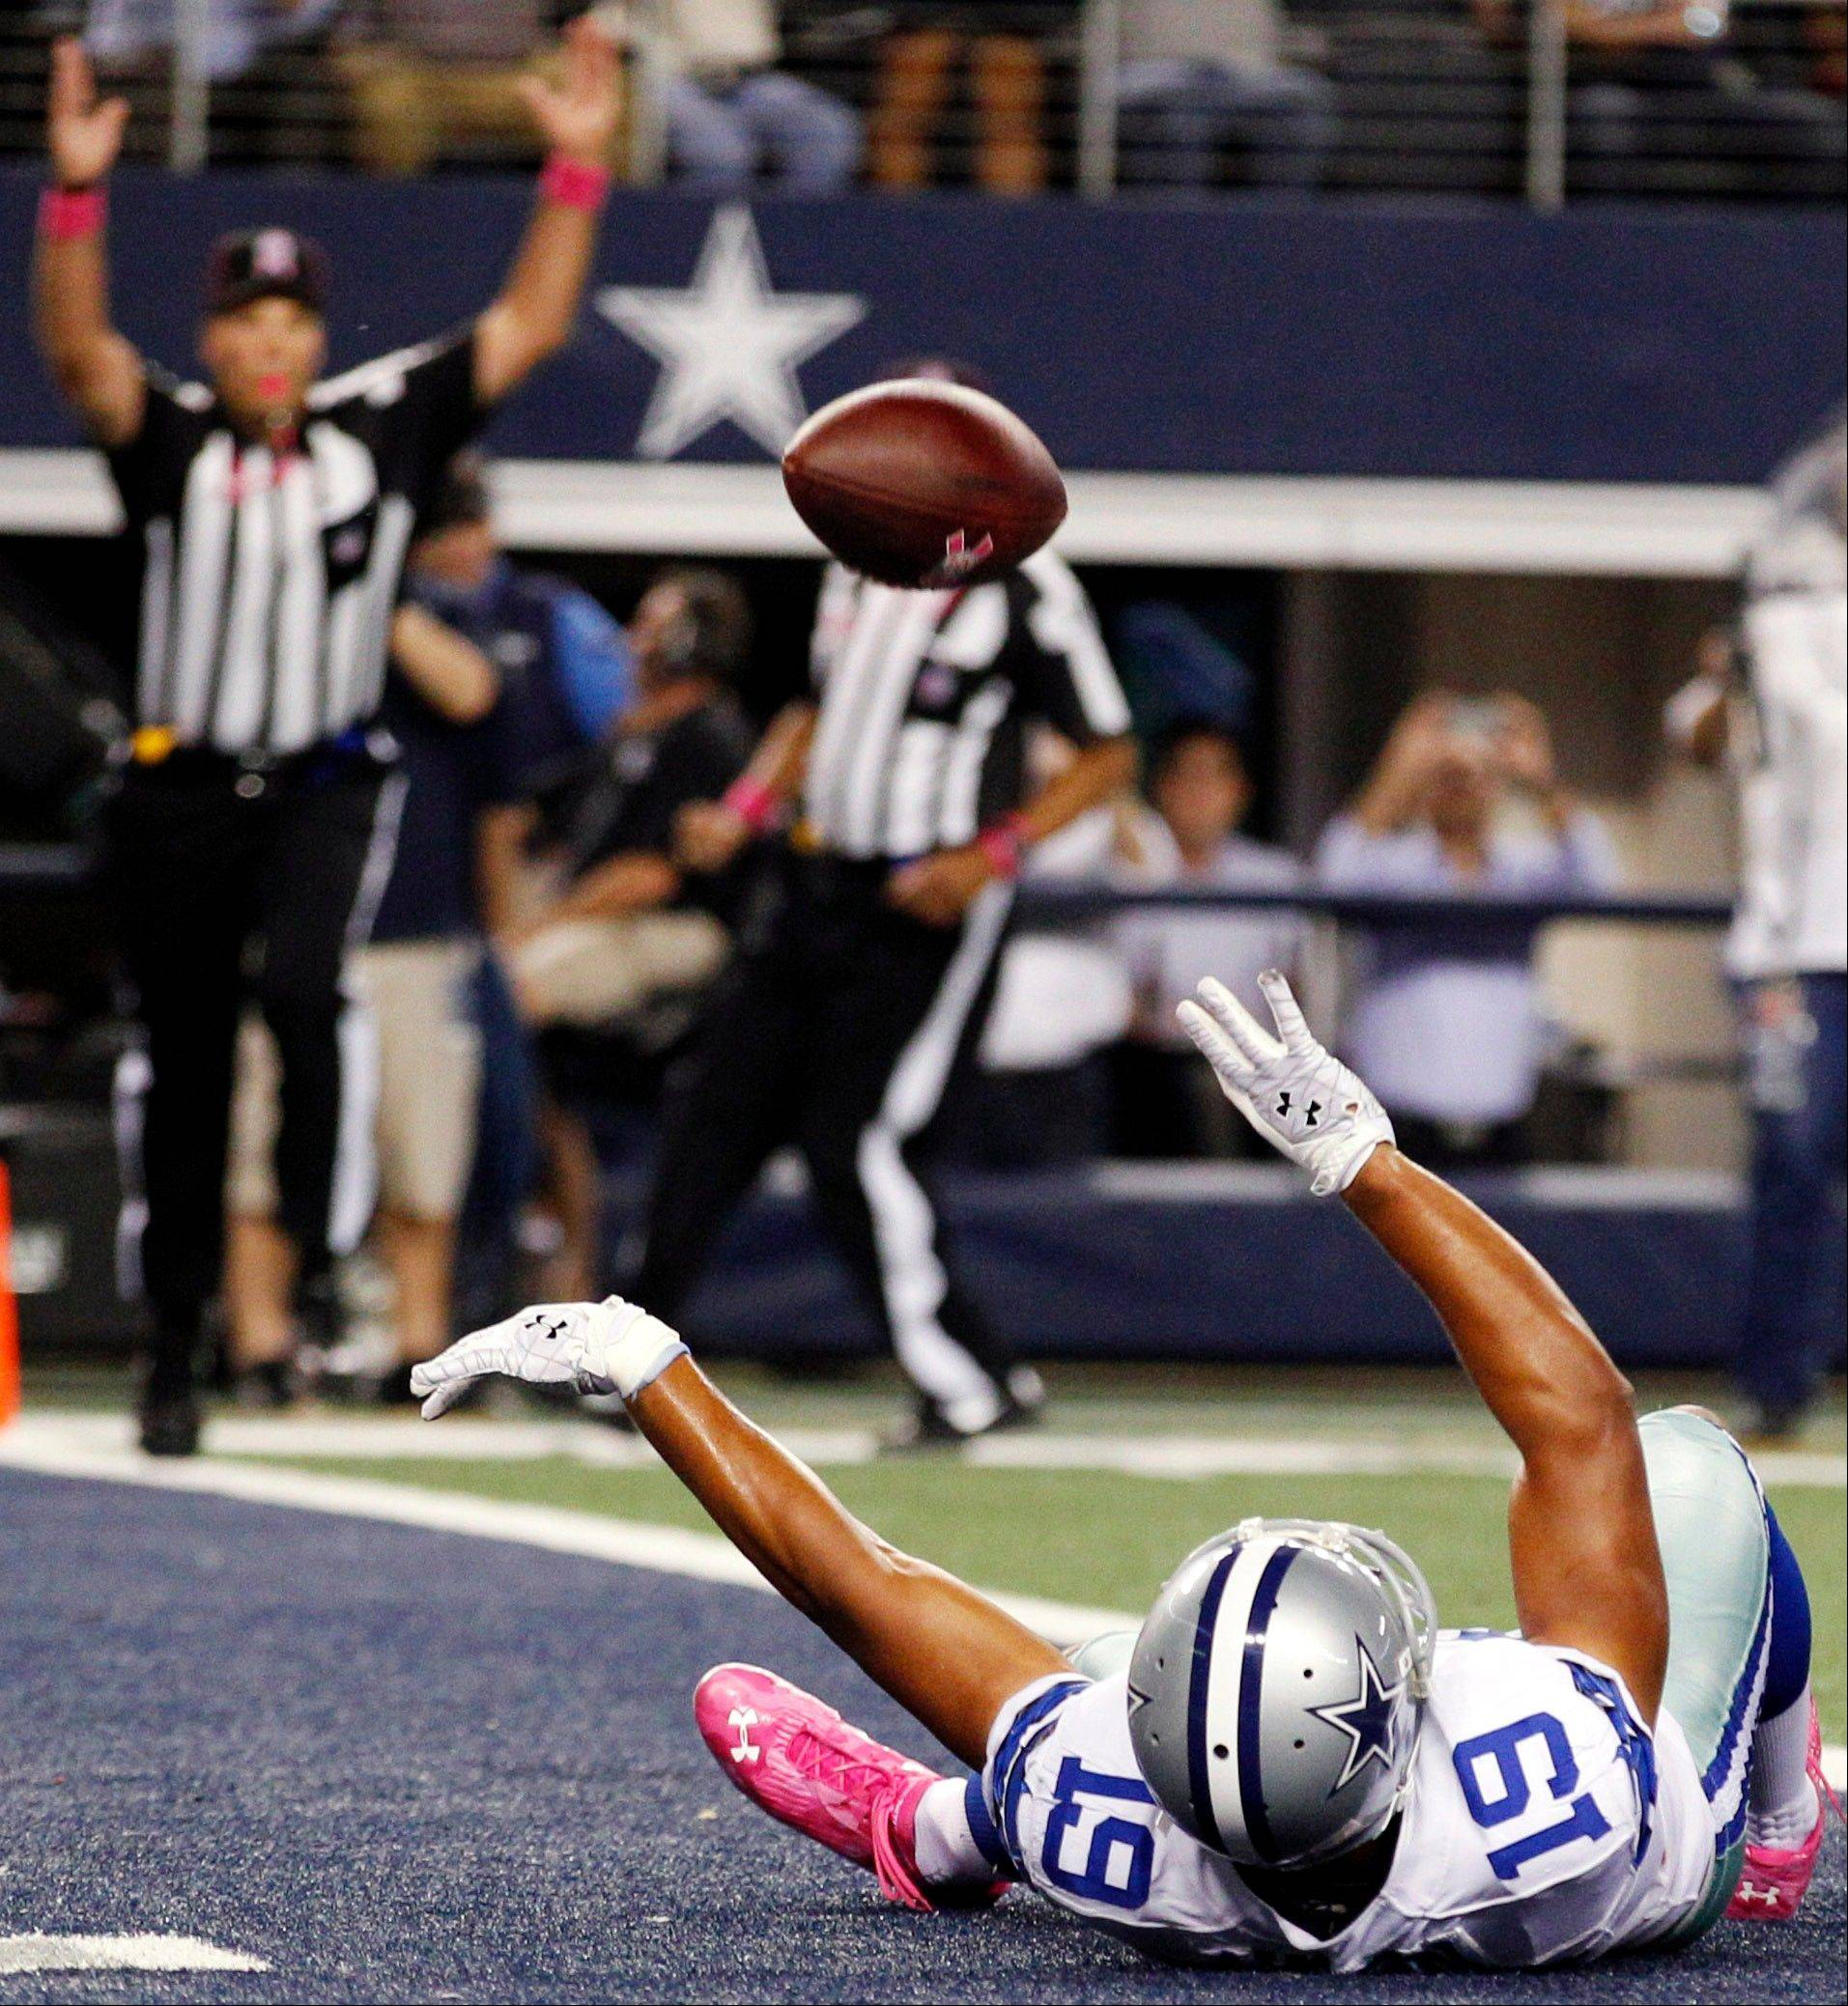 Dallas Cowboys wide receiver Miles Austin celebrates after scoring a touchdown against the Chicago Bears.